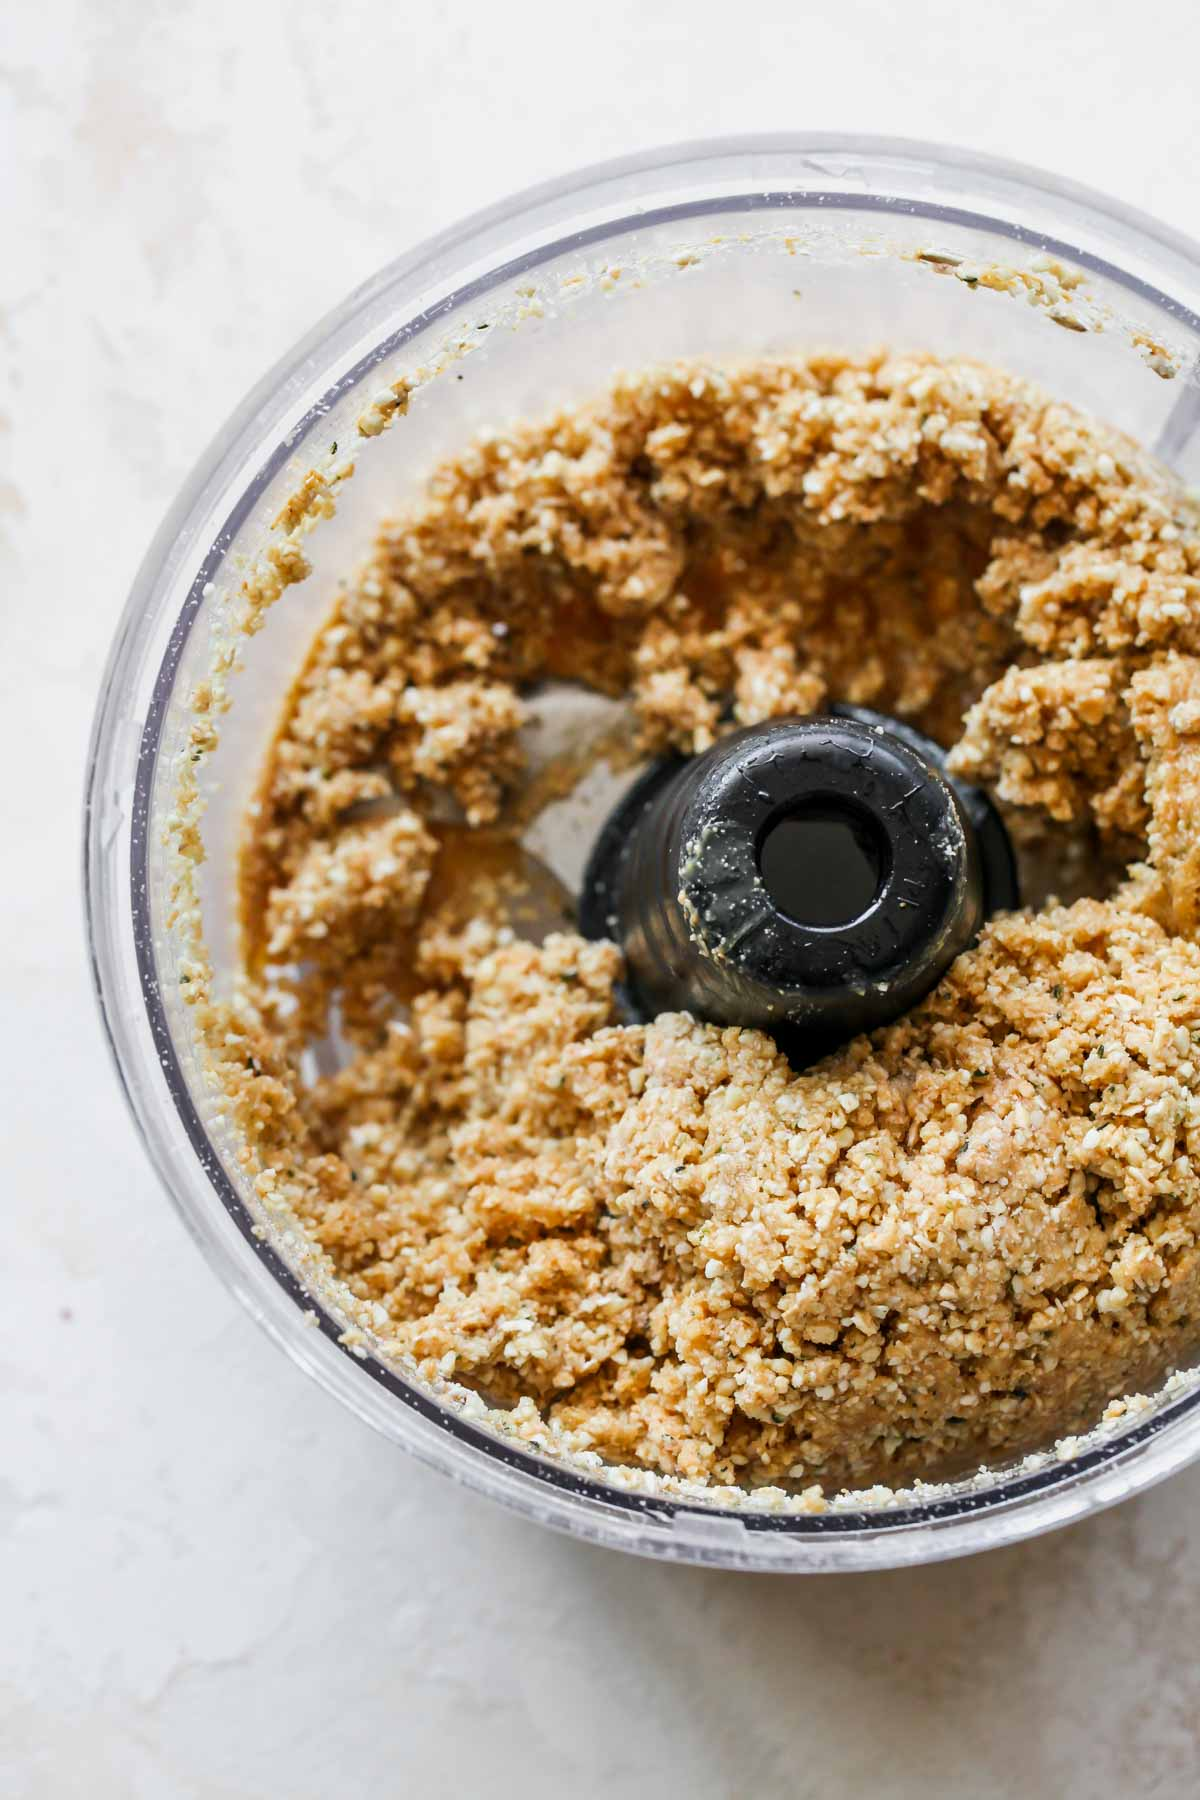 Cashew butter and maple syrup blended with dry ingredients in a food processor